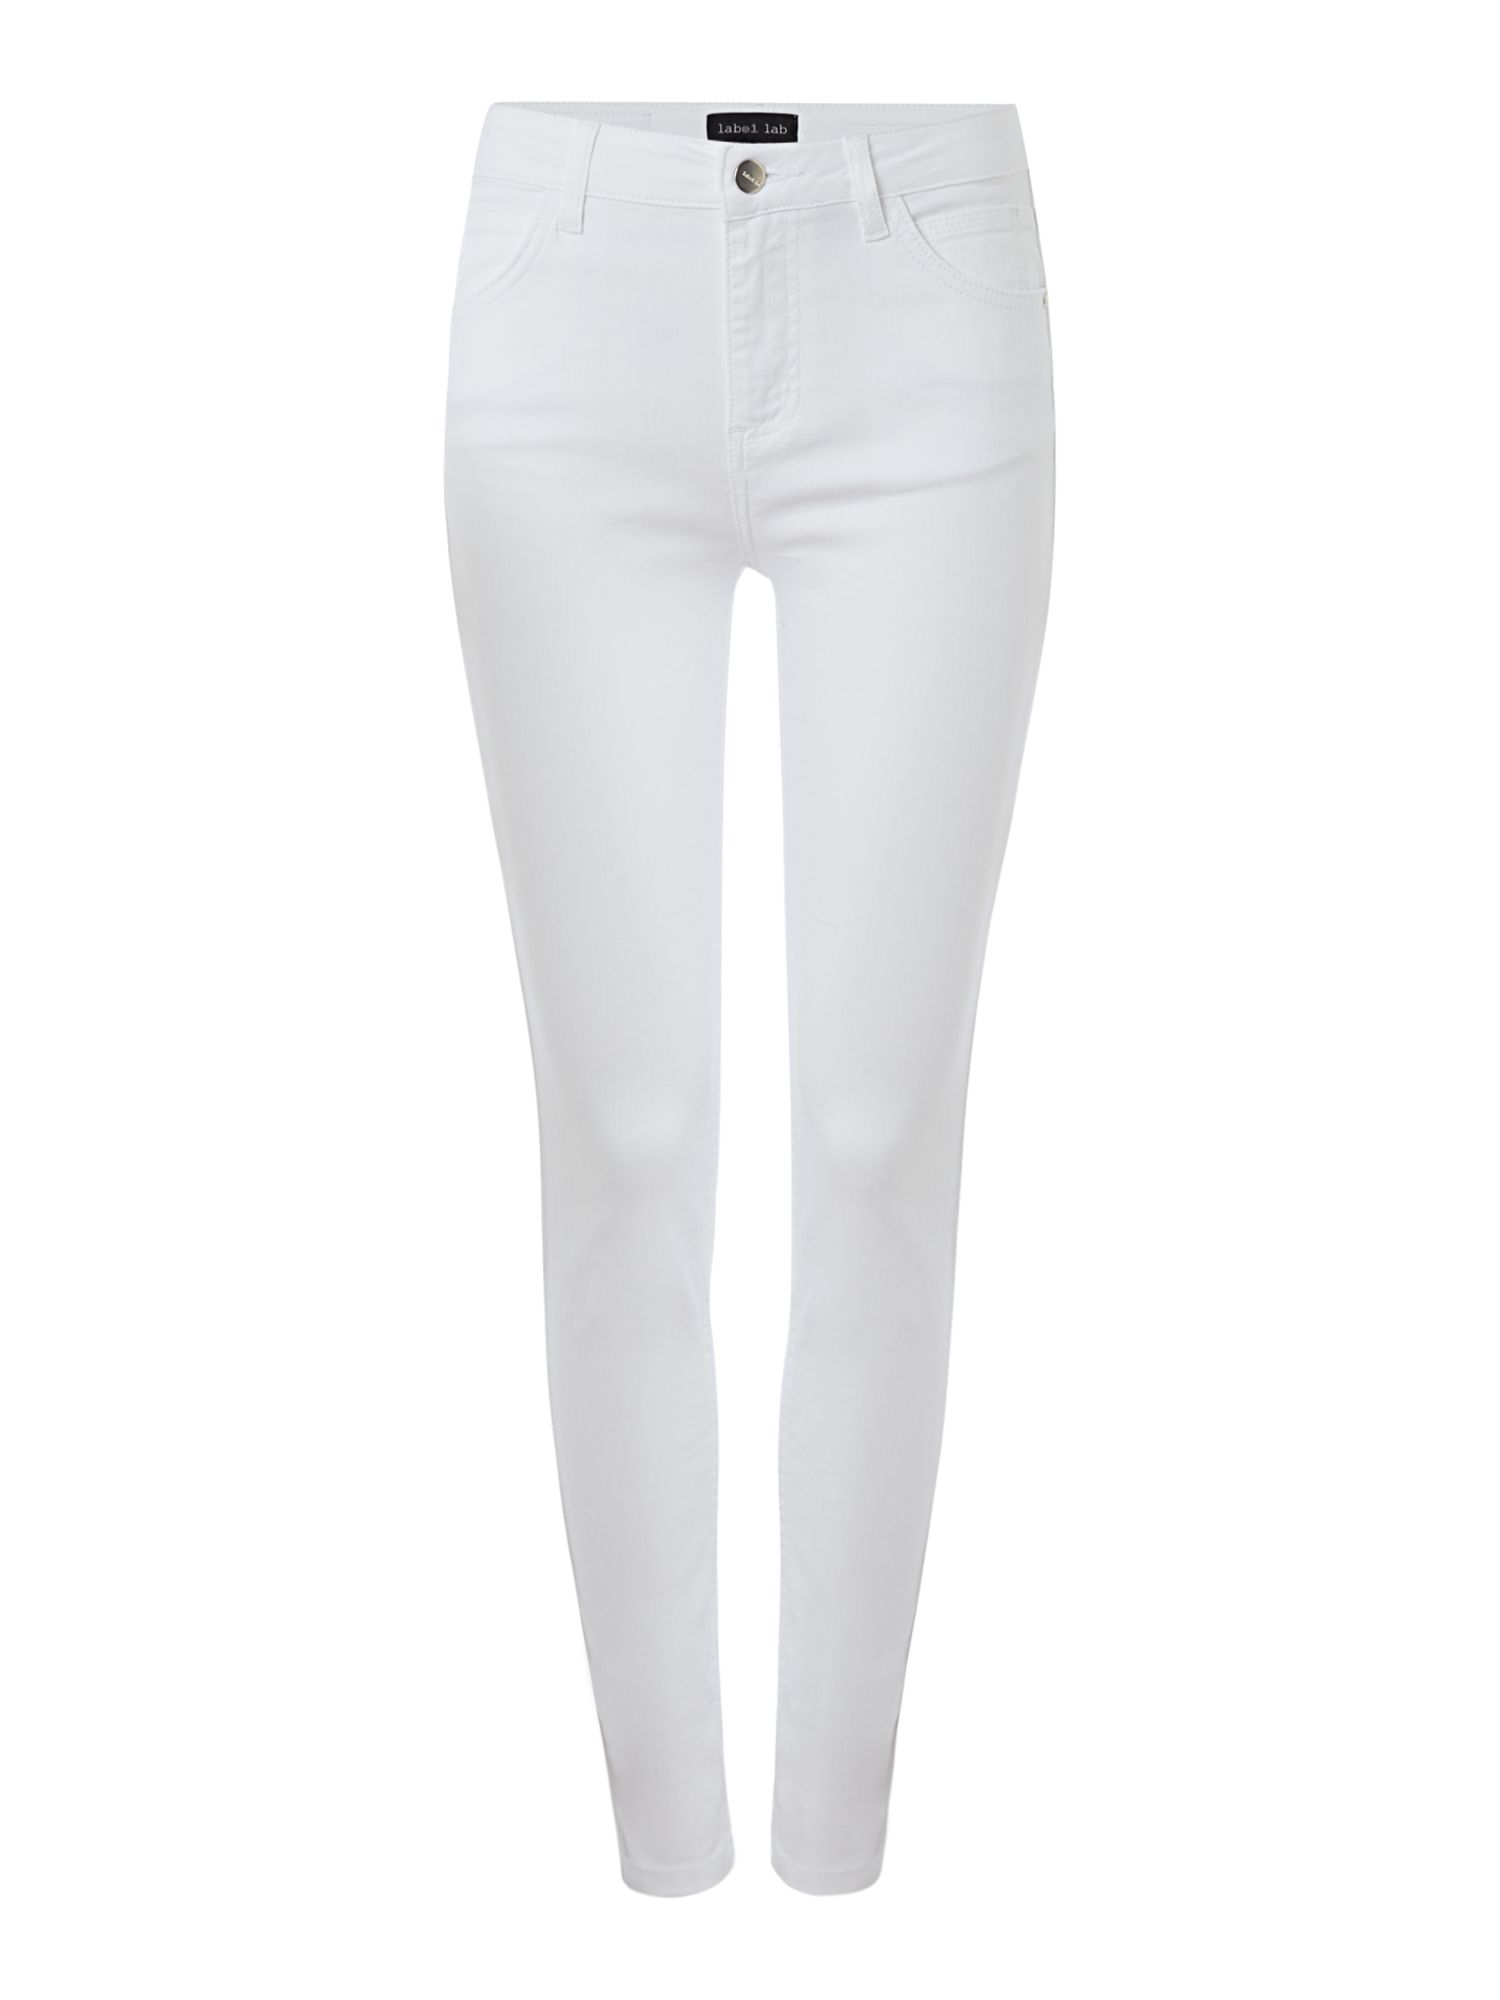 Label Lab Monument skinny jean, White